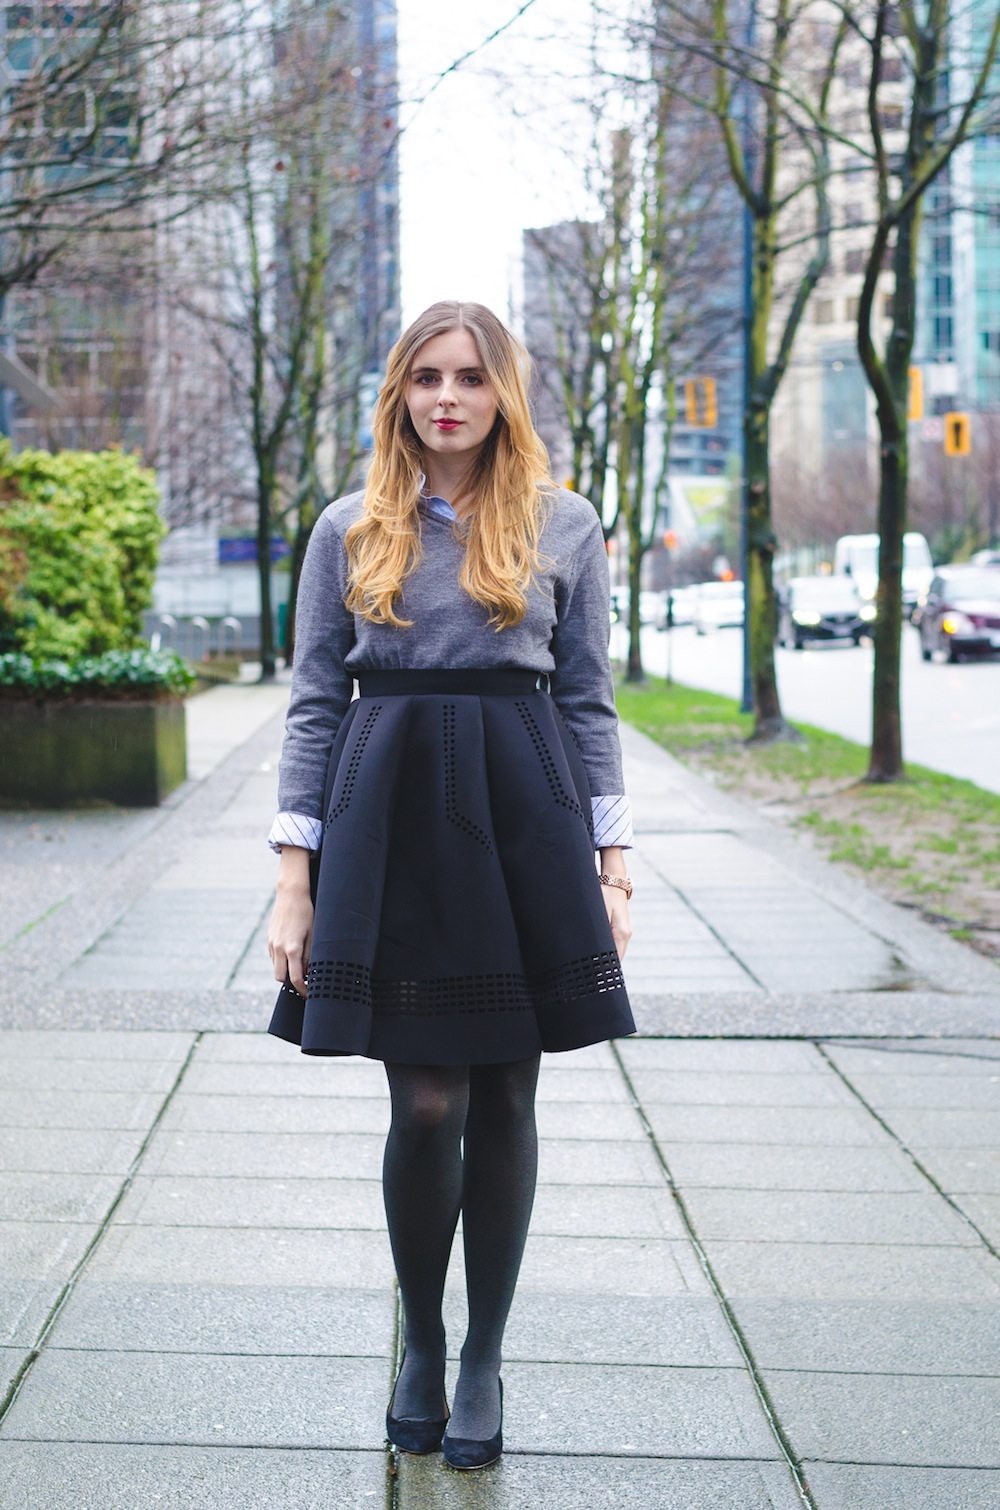 Cheap ways to look fashionable 95